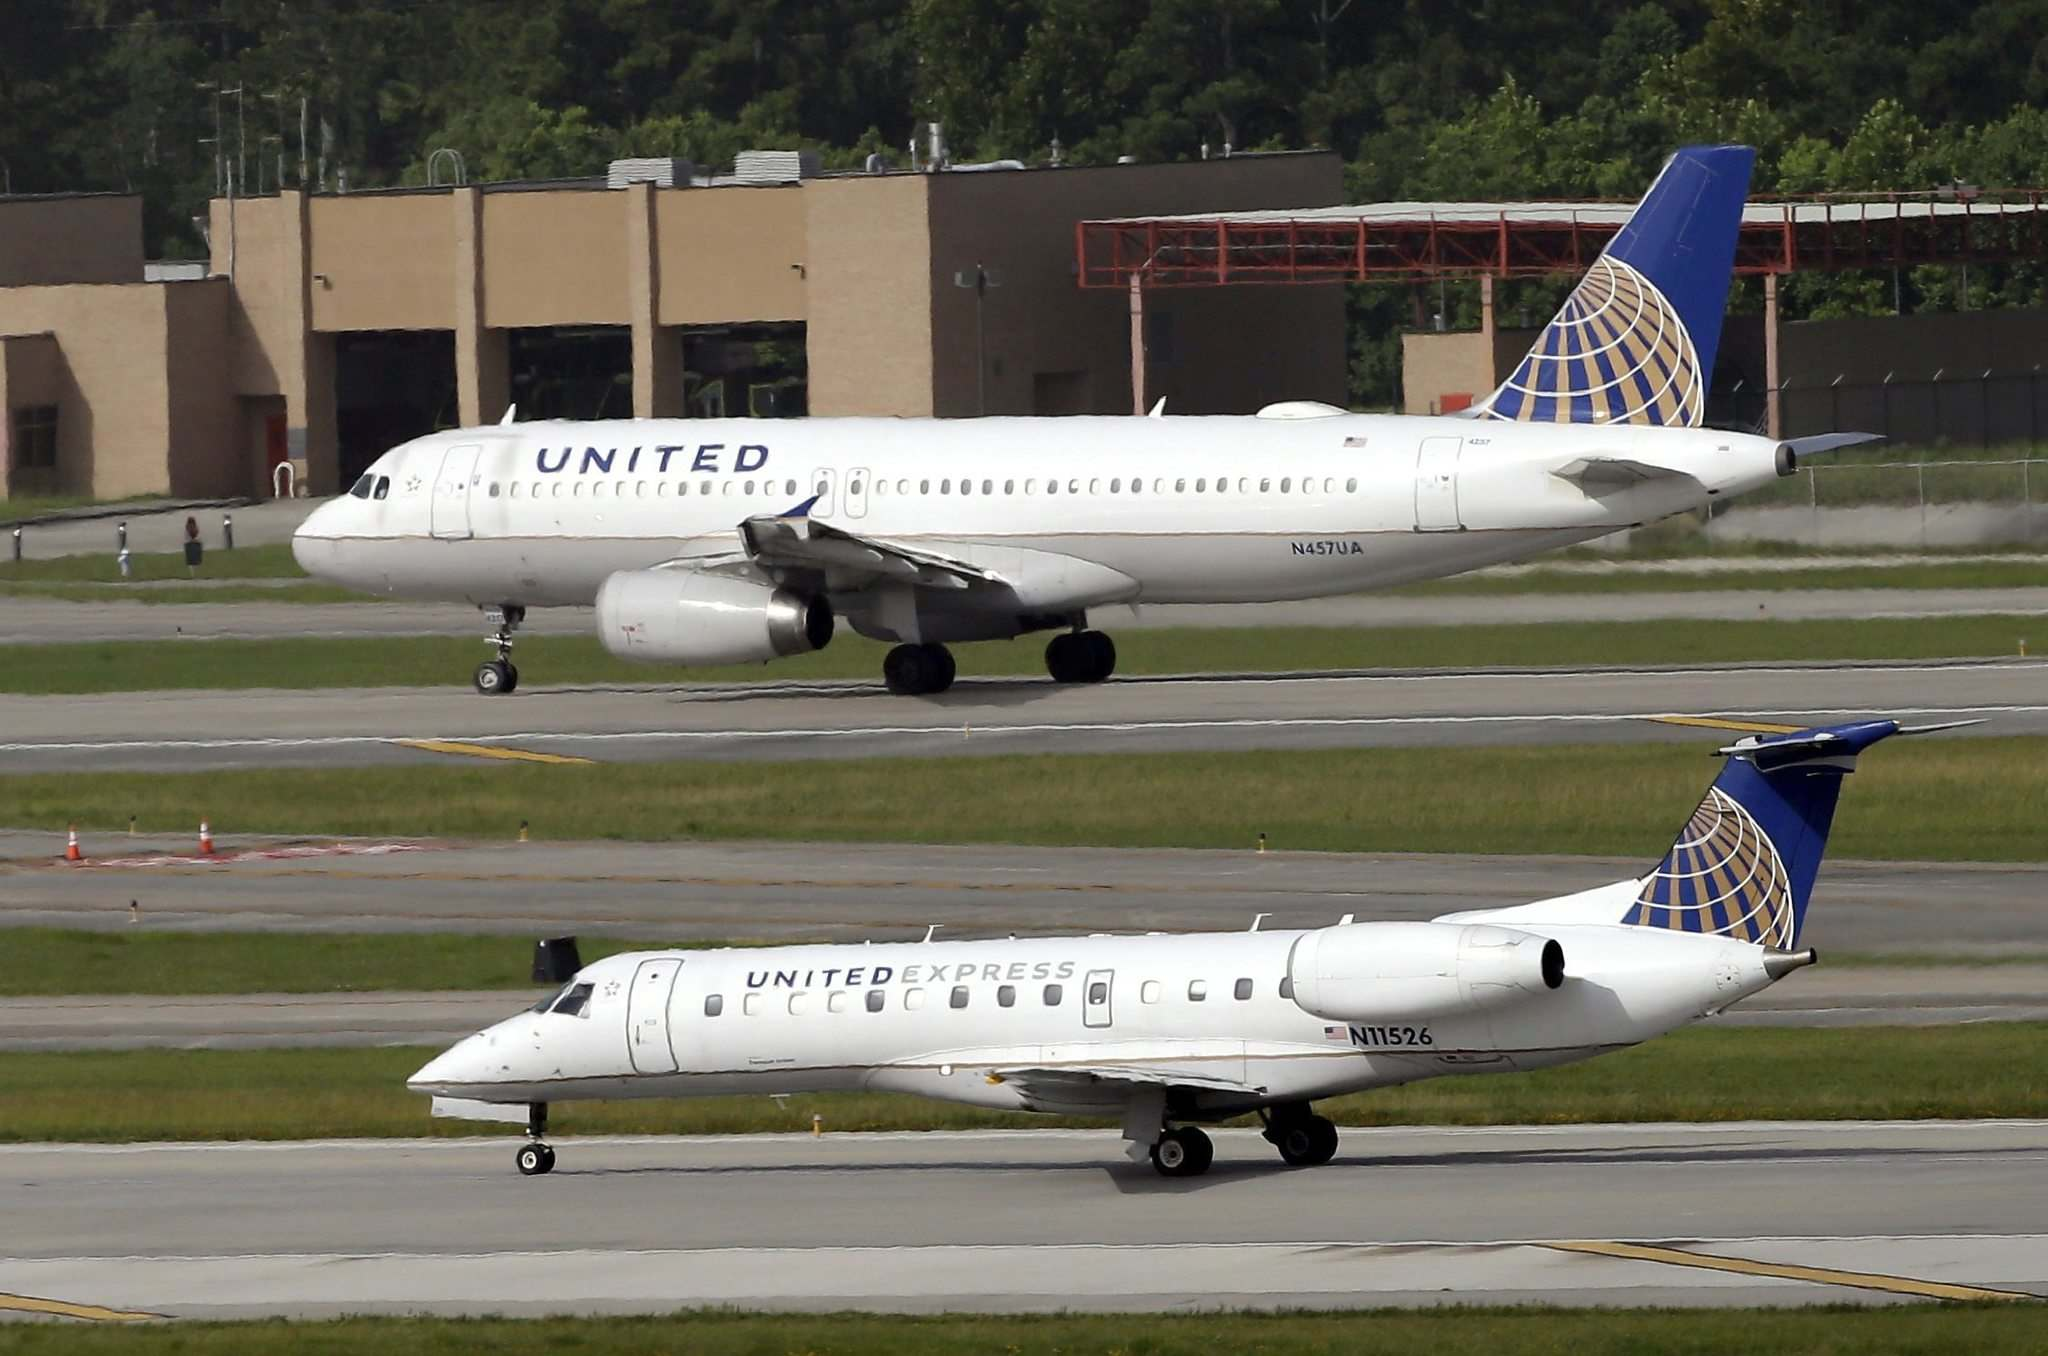 New Footage Shows Tense Moments Before Passenger Is Dragged Off United Flight